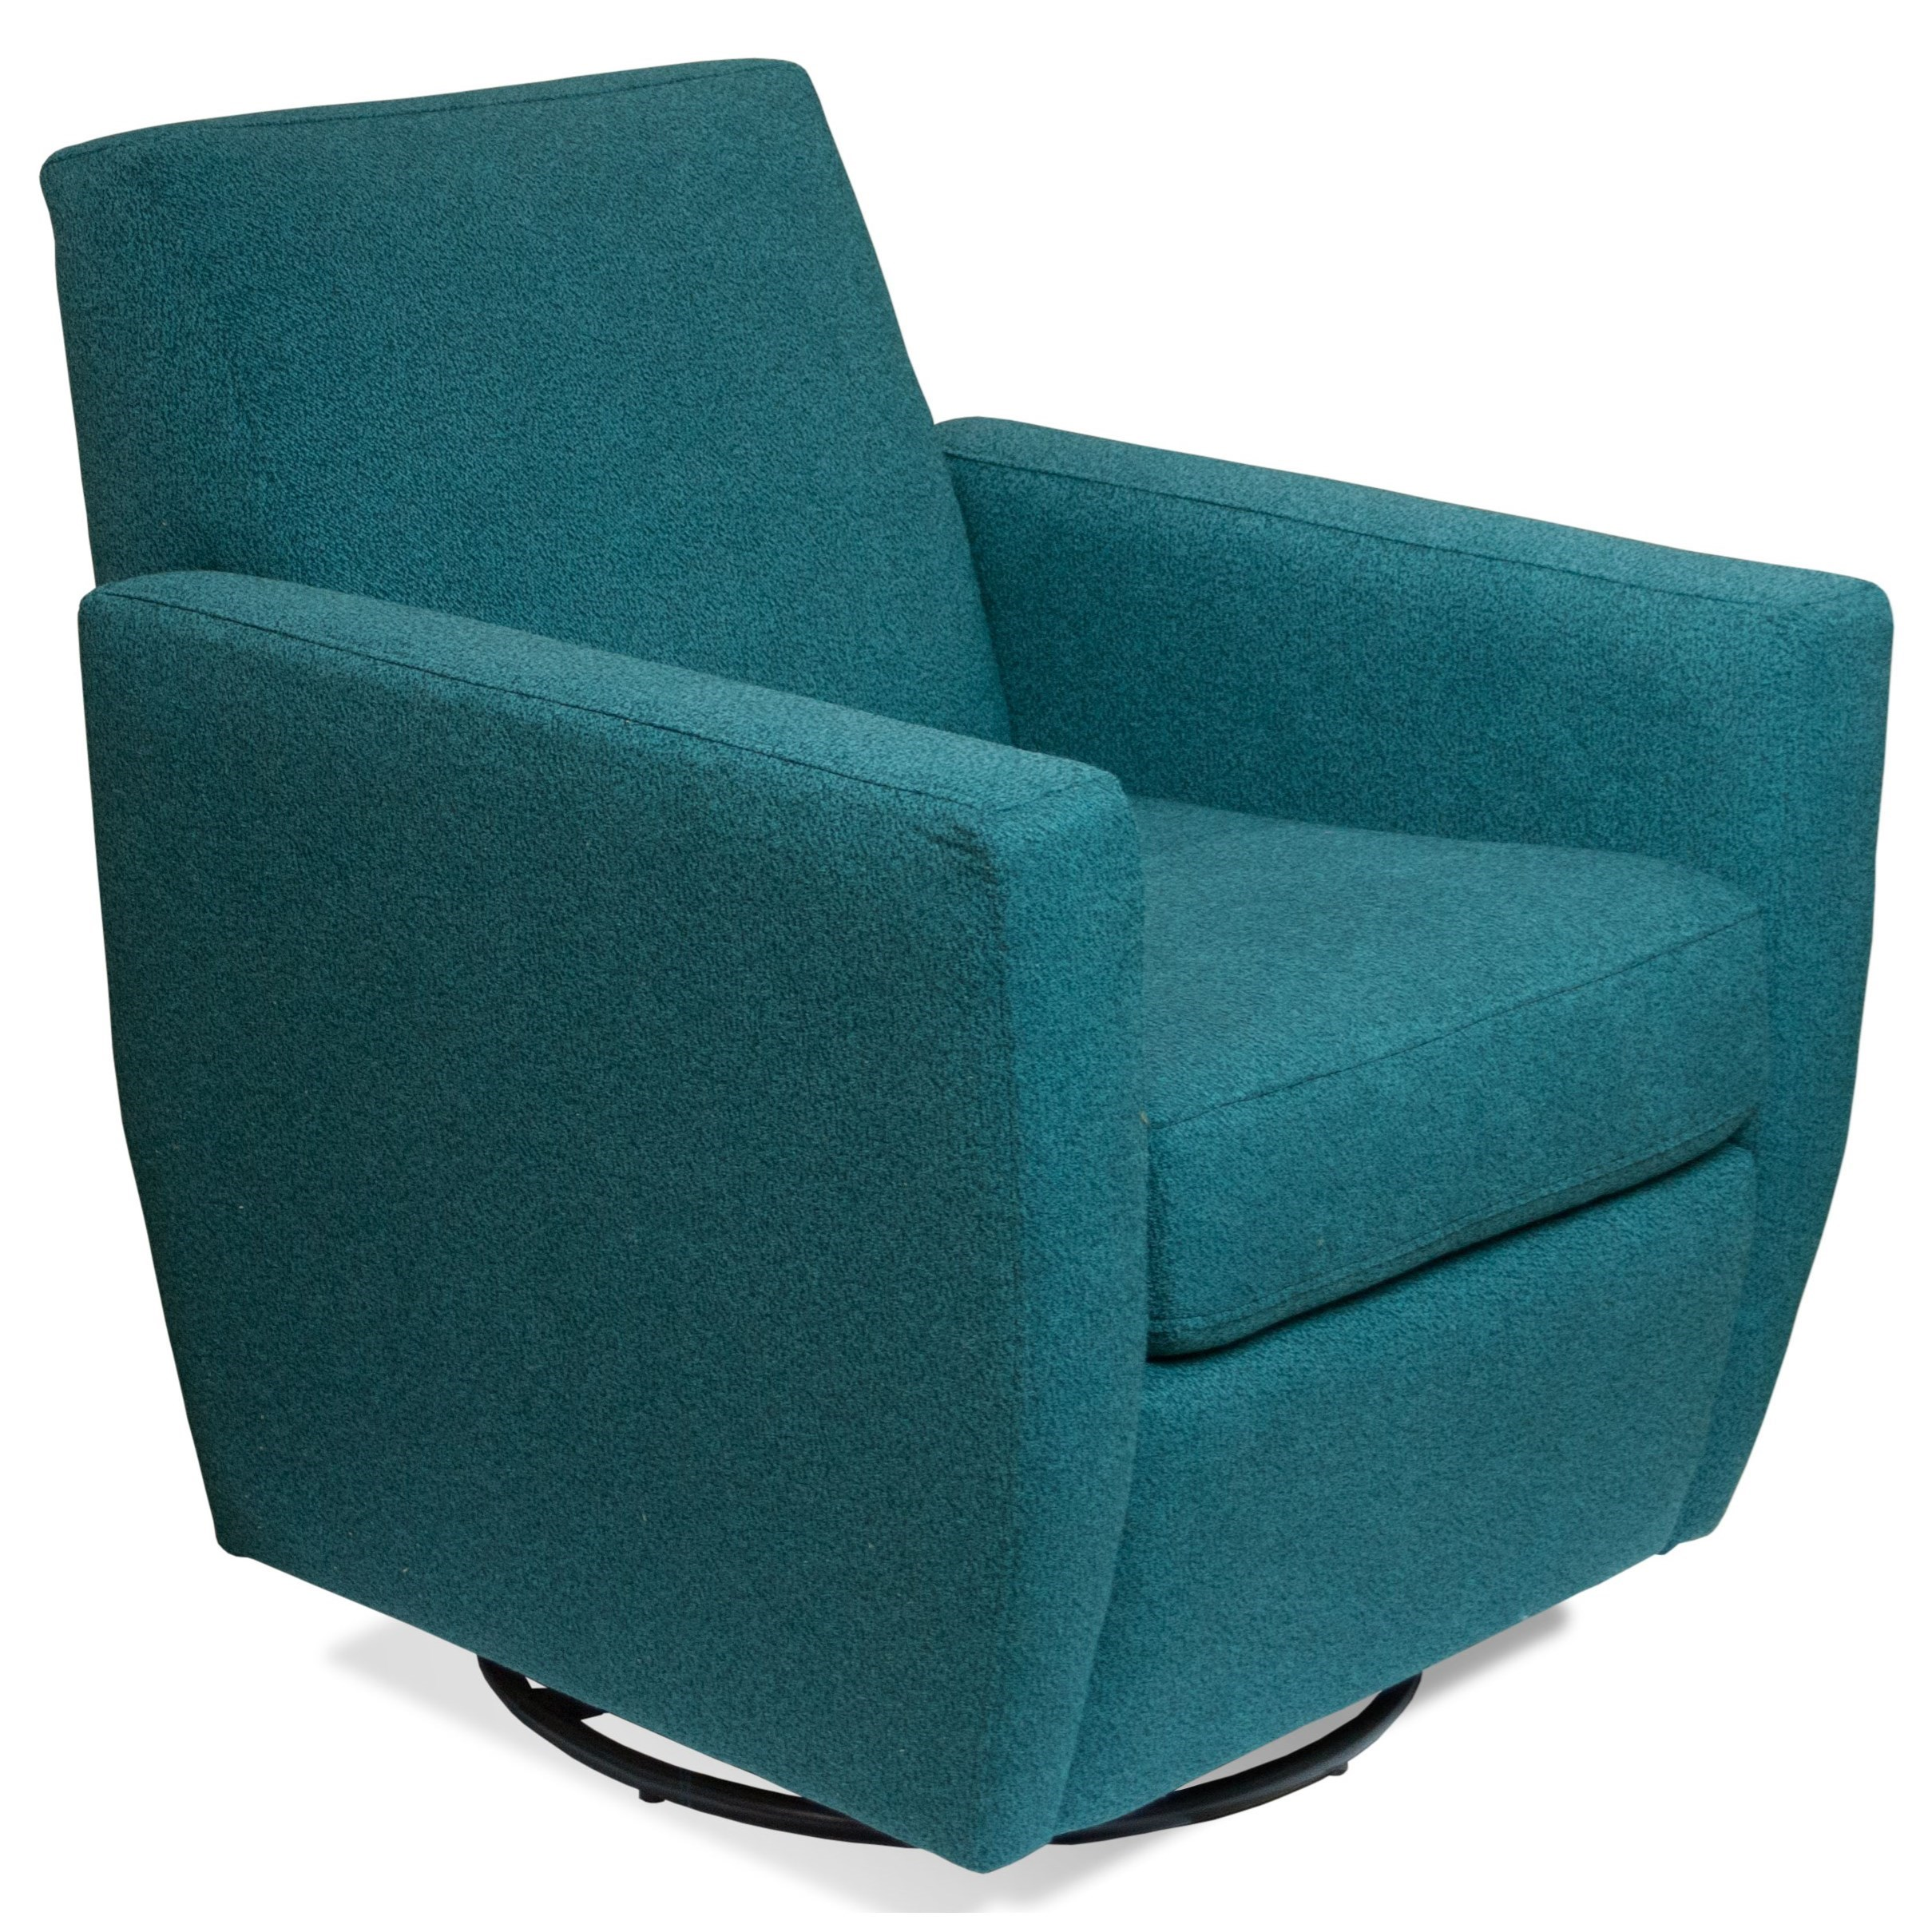 Stanton Accent Chairs and Ottomans Contemporary Upholstered Swivel ...